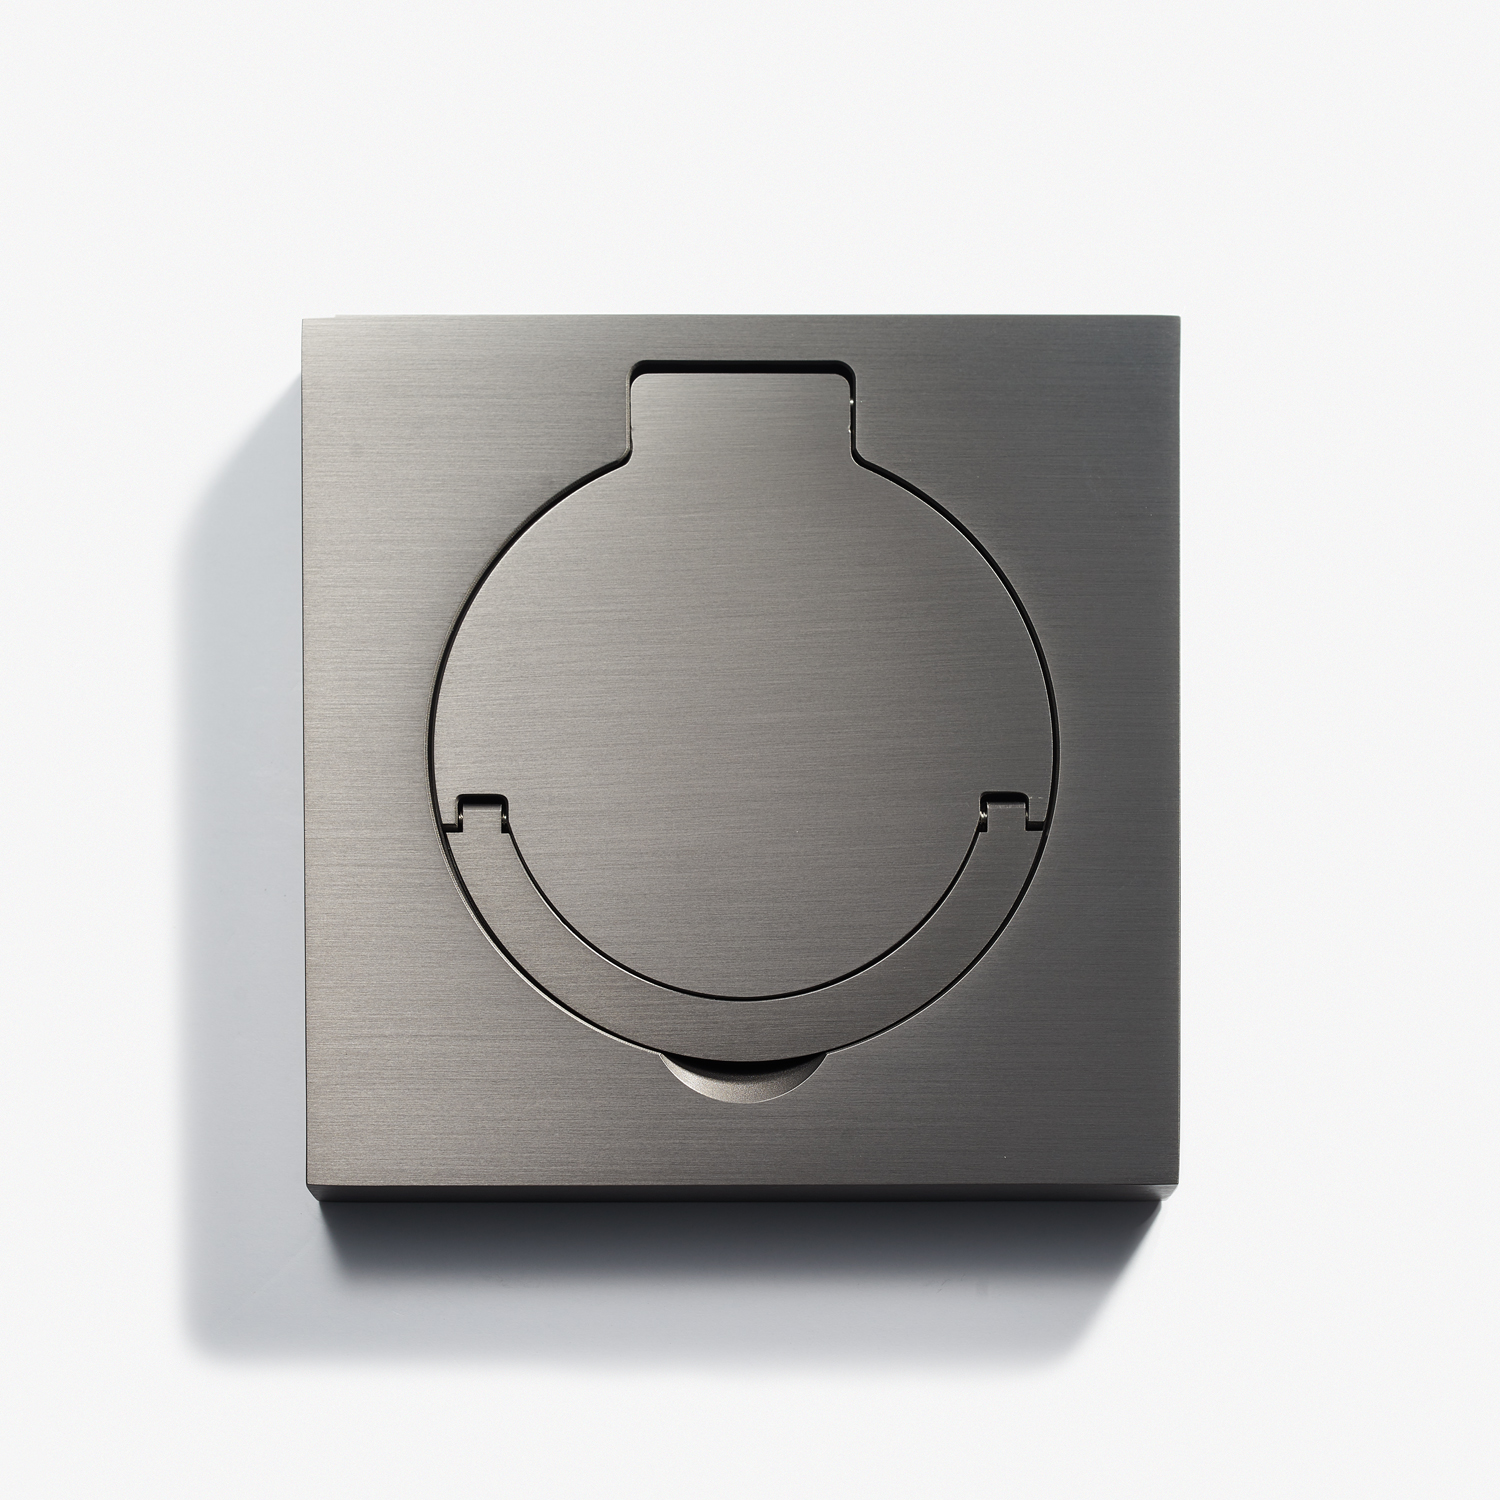 Floor Outlets_100 x 100 - Square Floor Outlet - Water Resistant - Canon de Fusil Anthracite 1.jpg